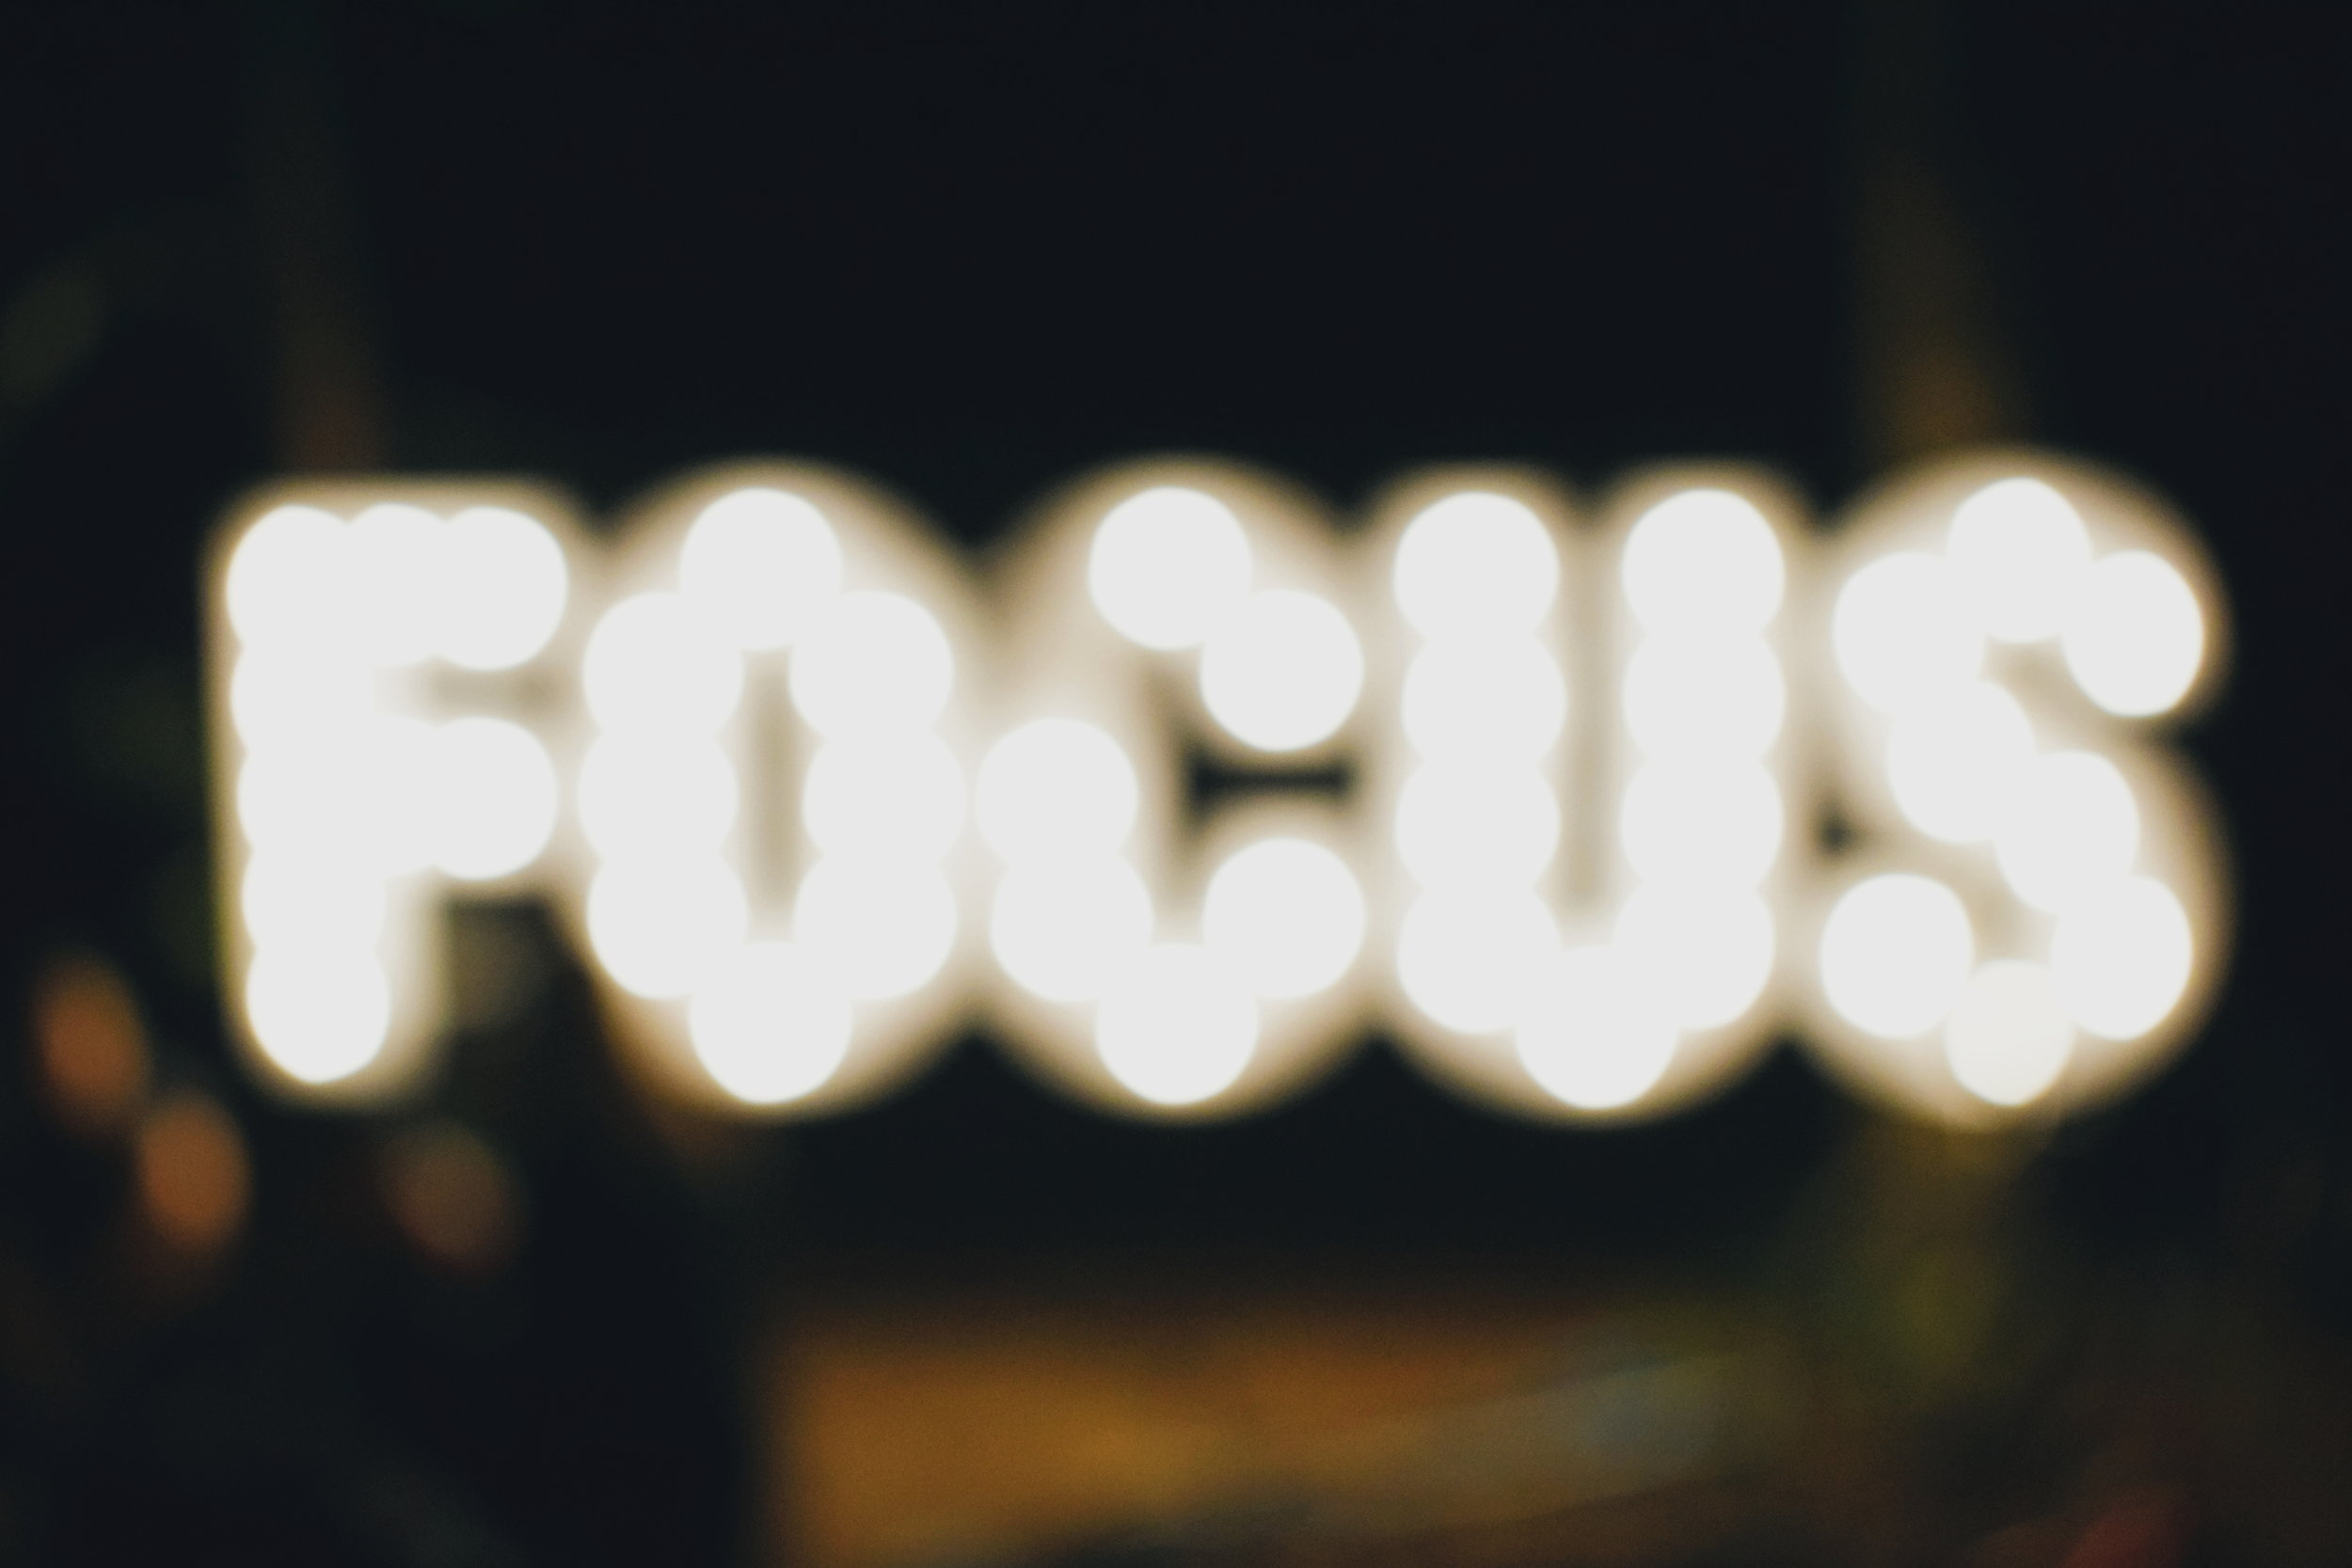 Focus in 2019